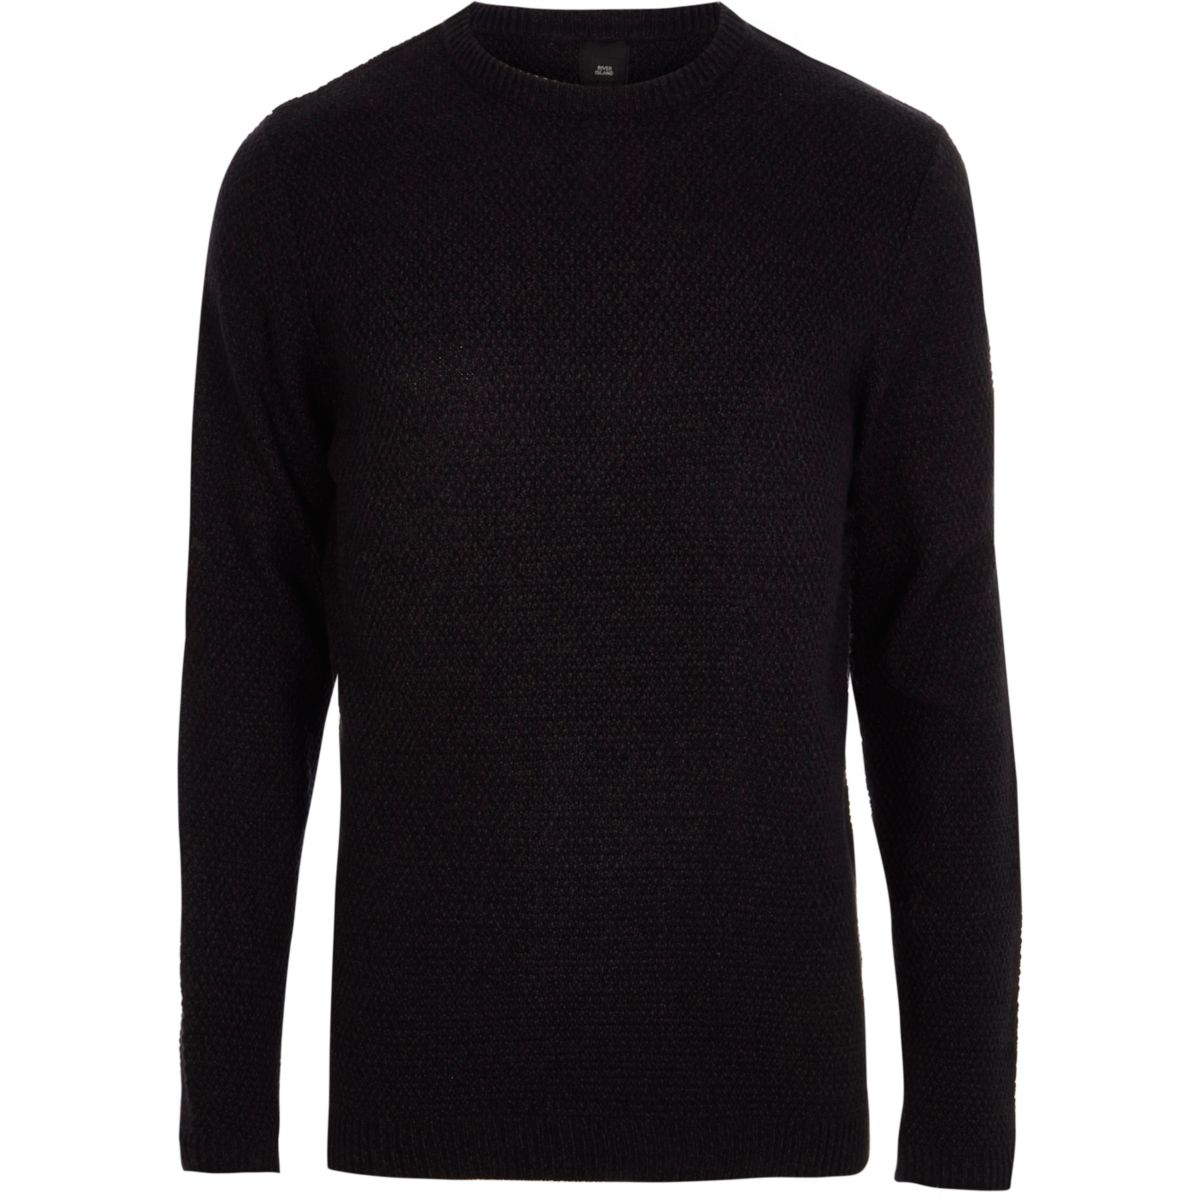 Navy slim fit crew neck sweater